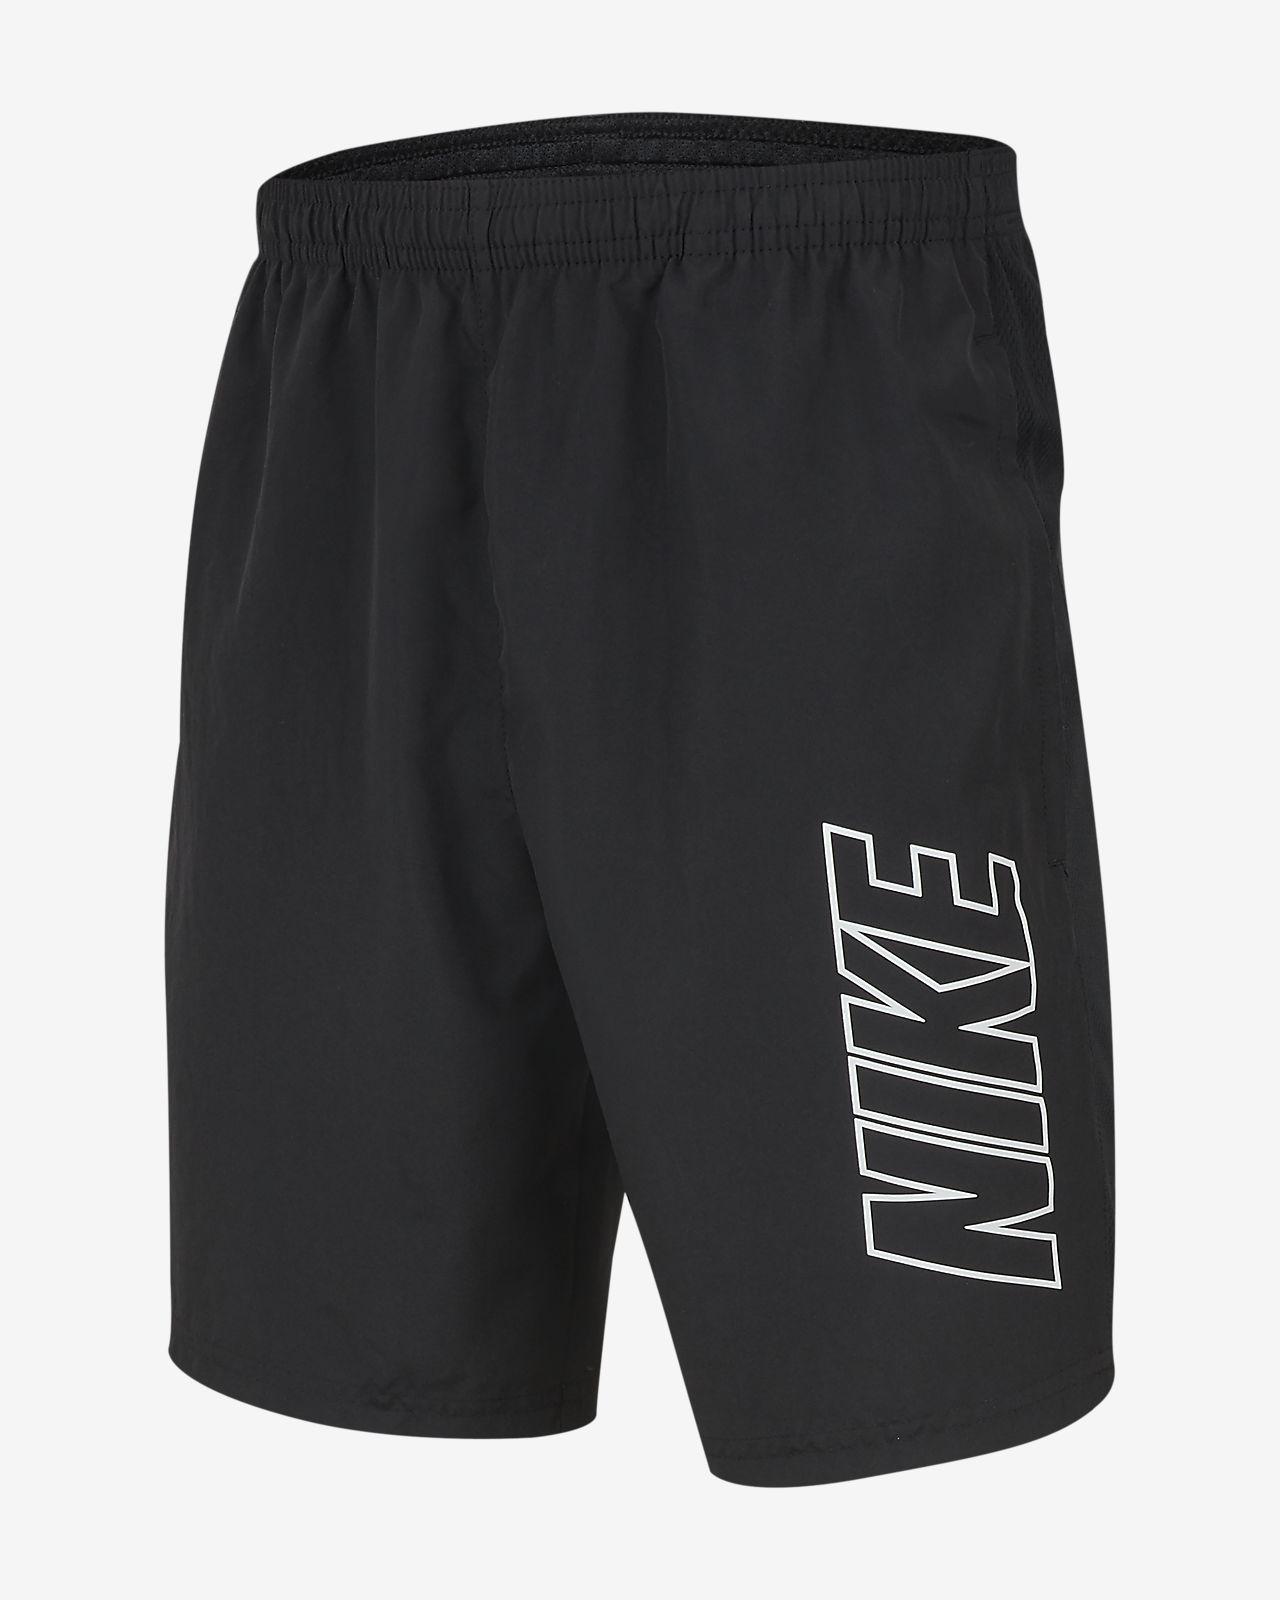 Short de football Nike Dri-FIT Academy pour Enfant plus âgé